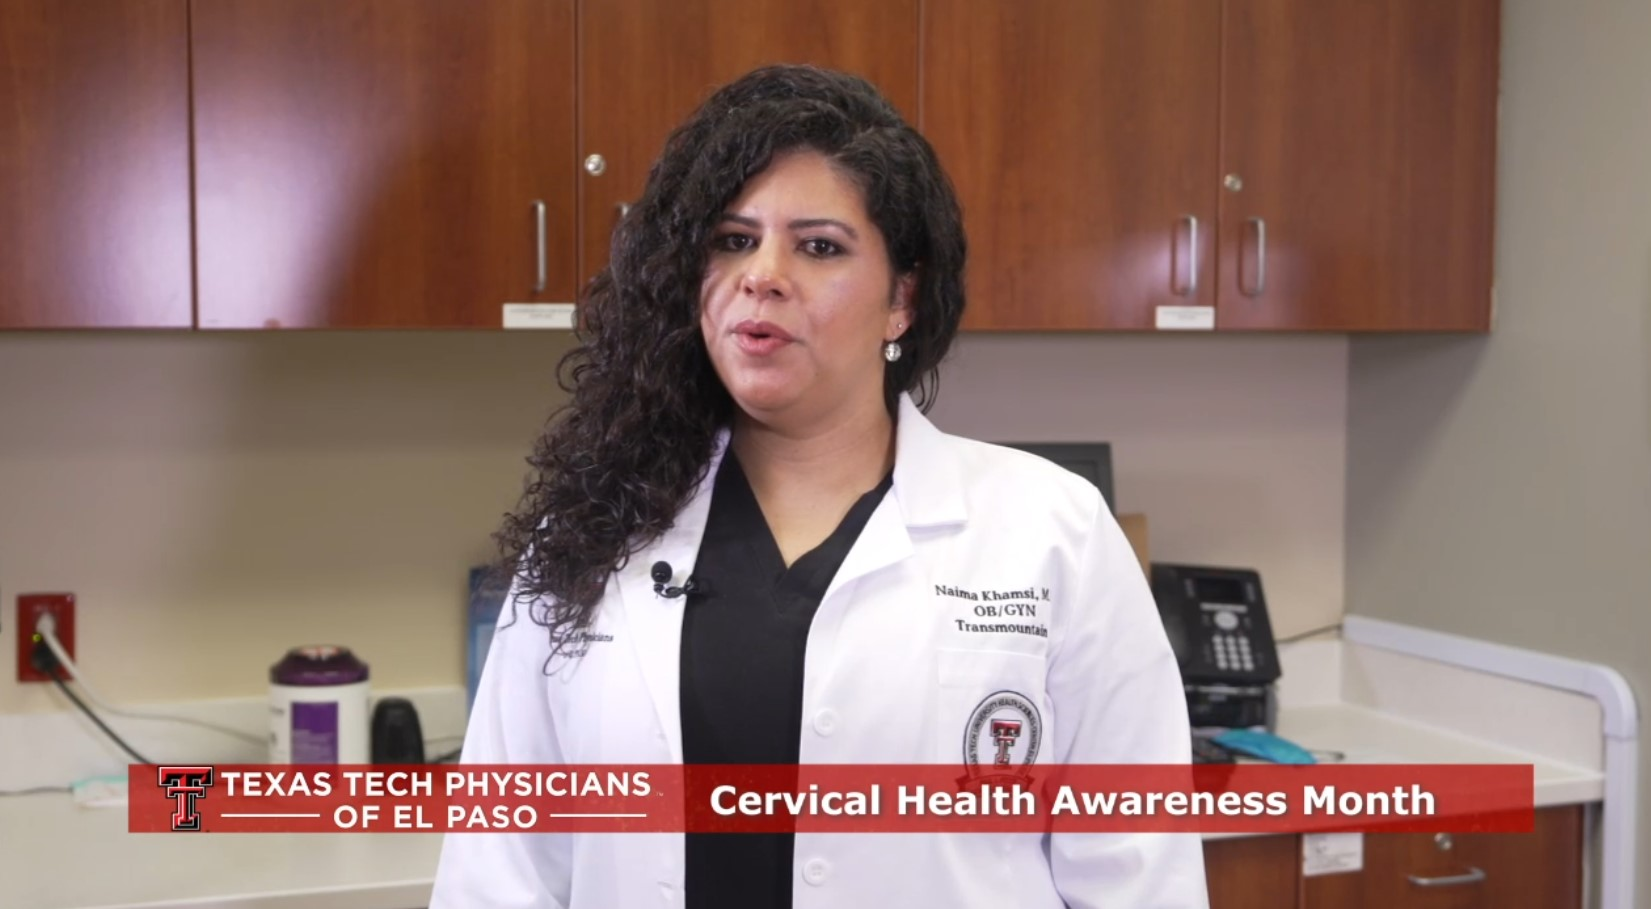 Cervical Cancer Awareness Month video